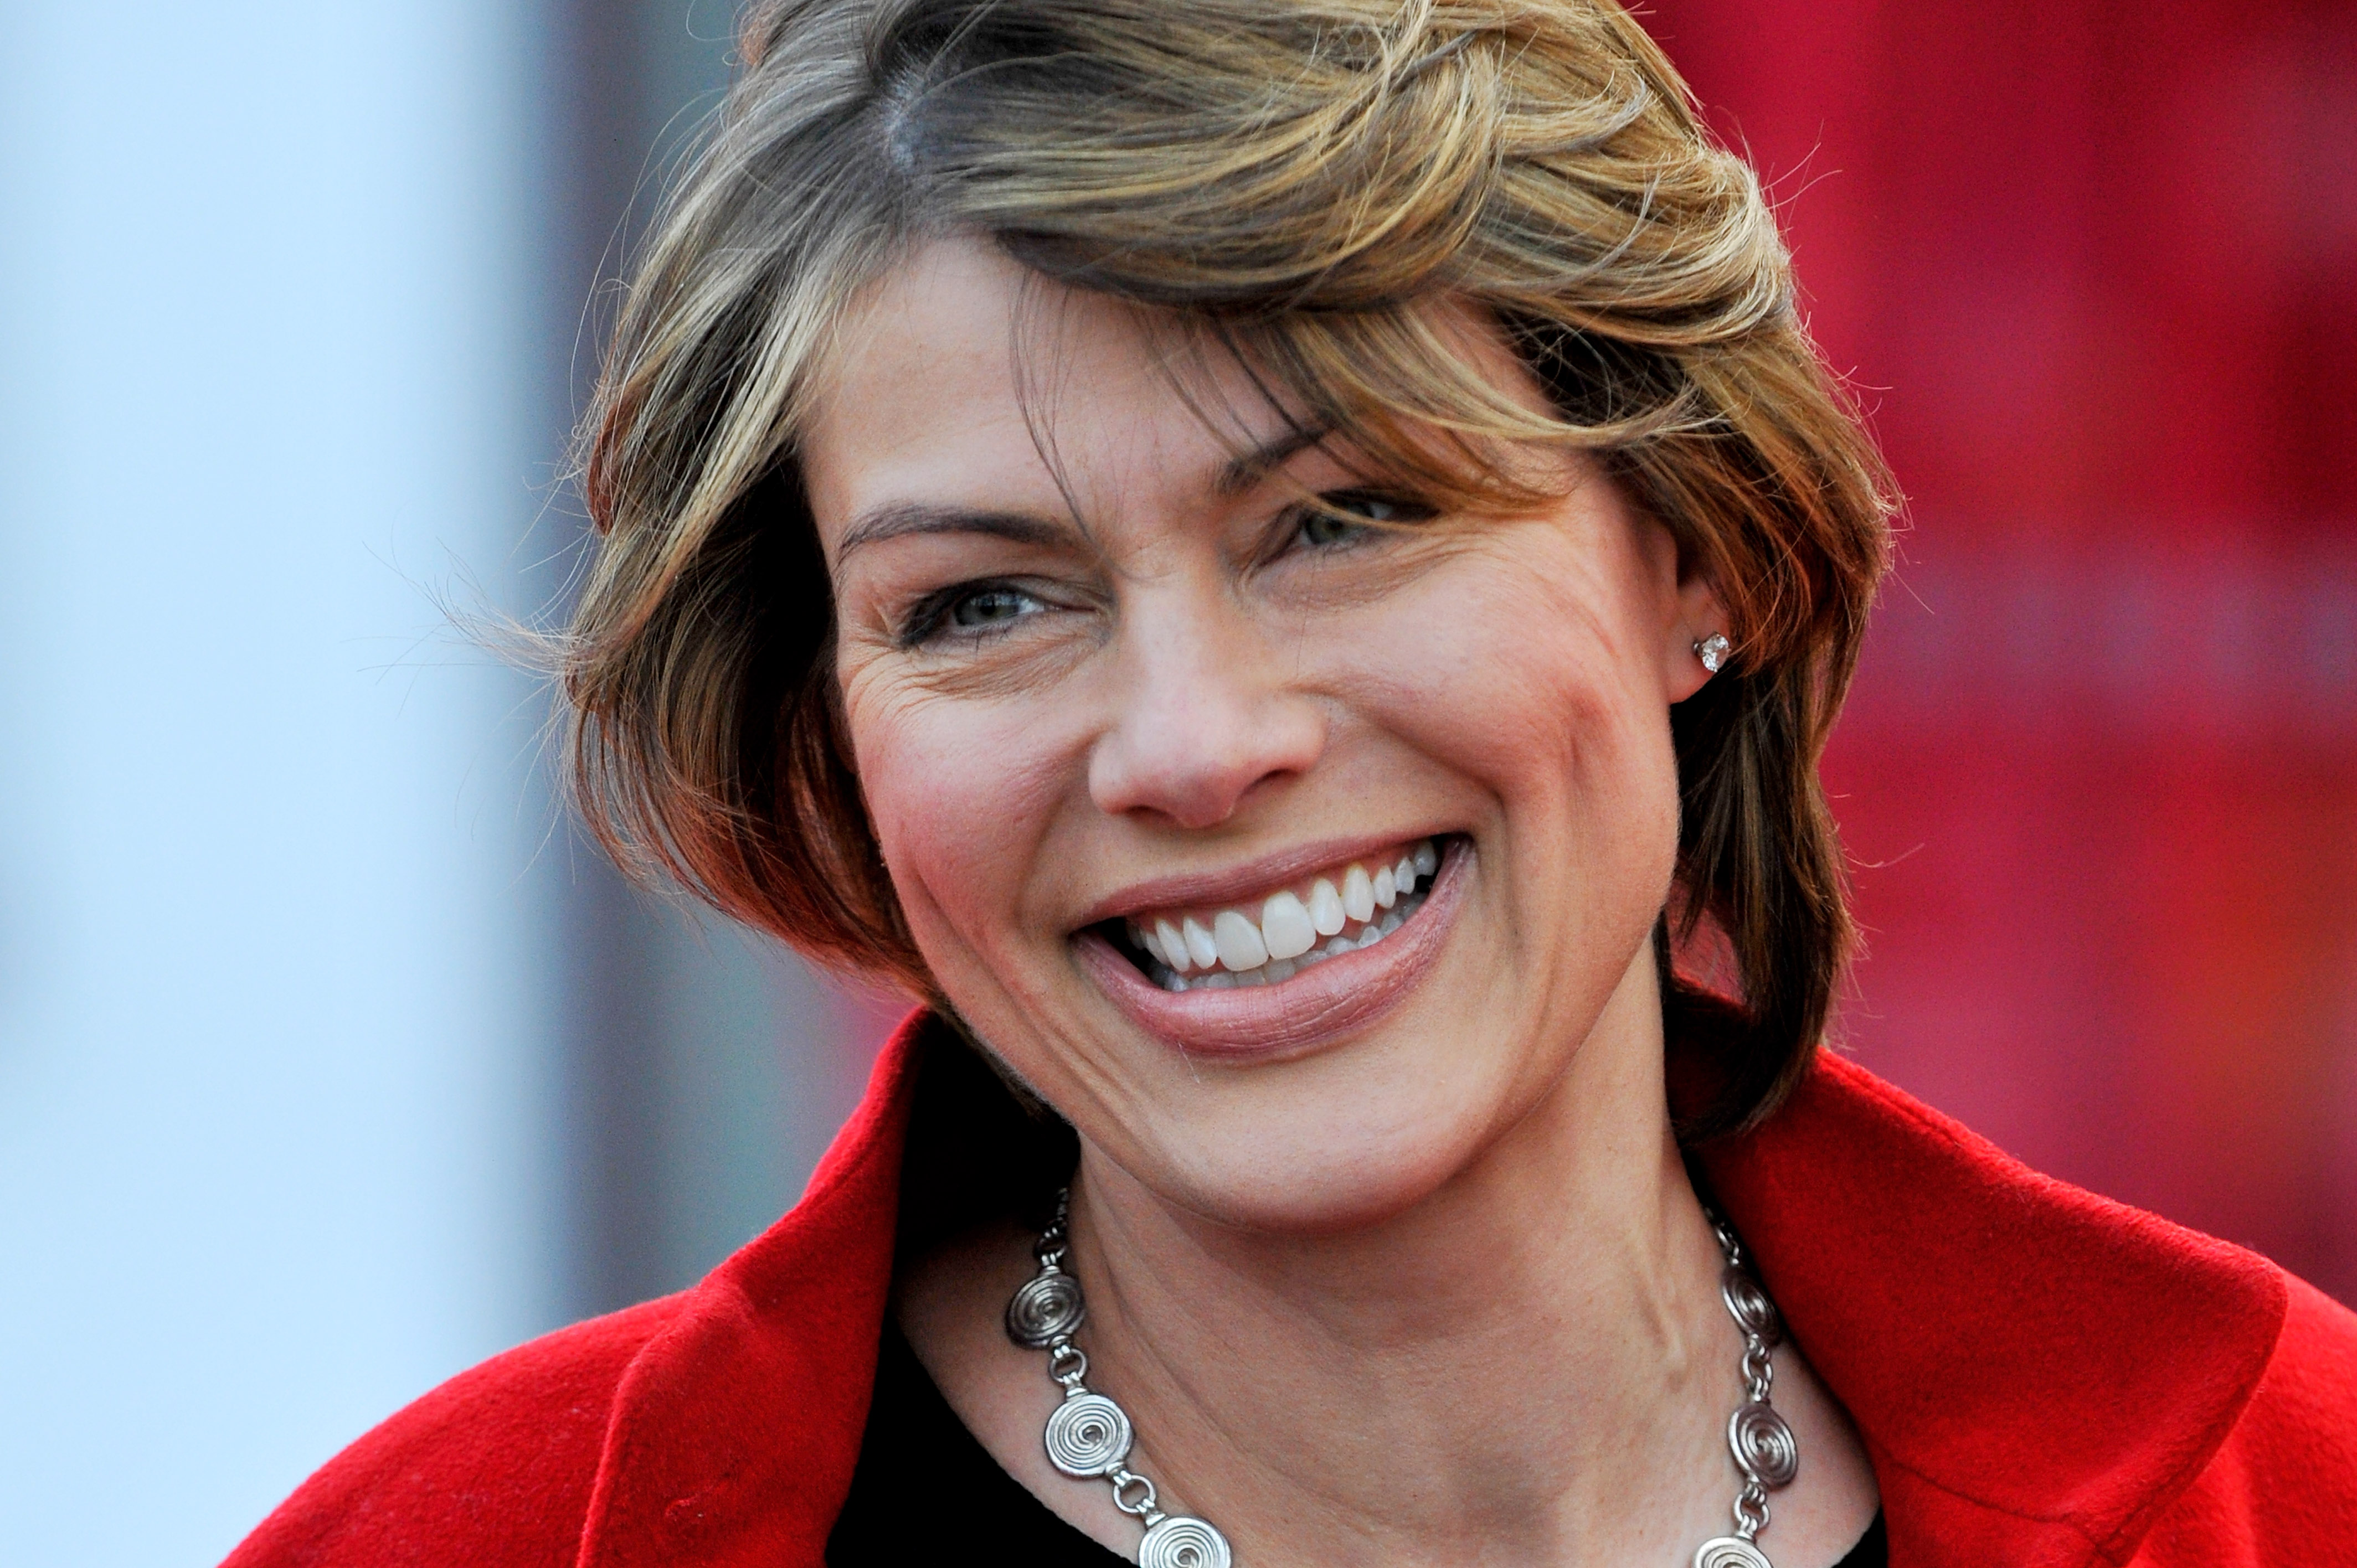 Kate Silverton age, husband, and journalism career as she's announced for Strictly